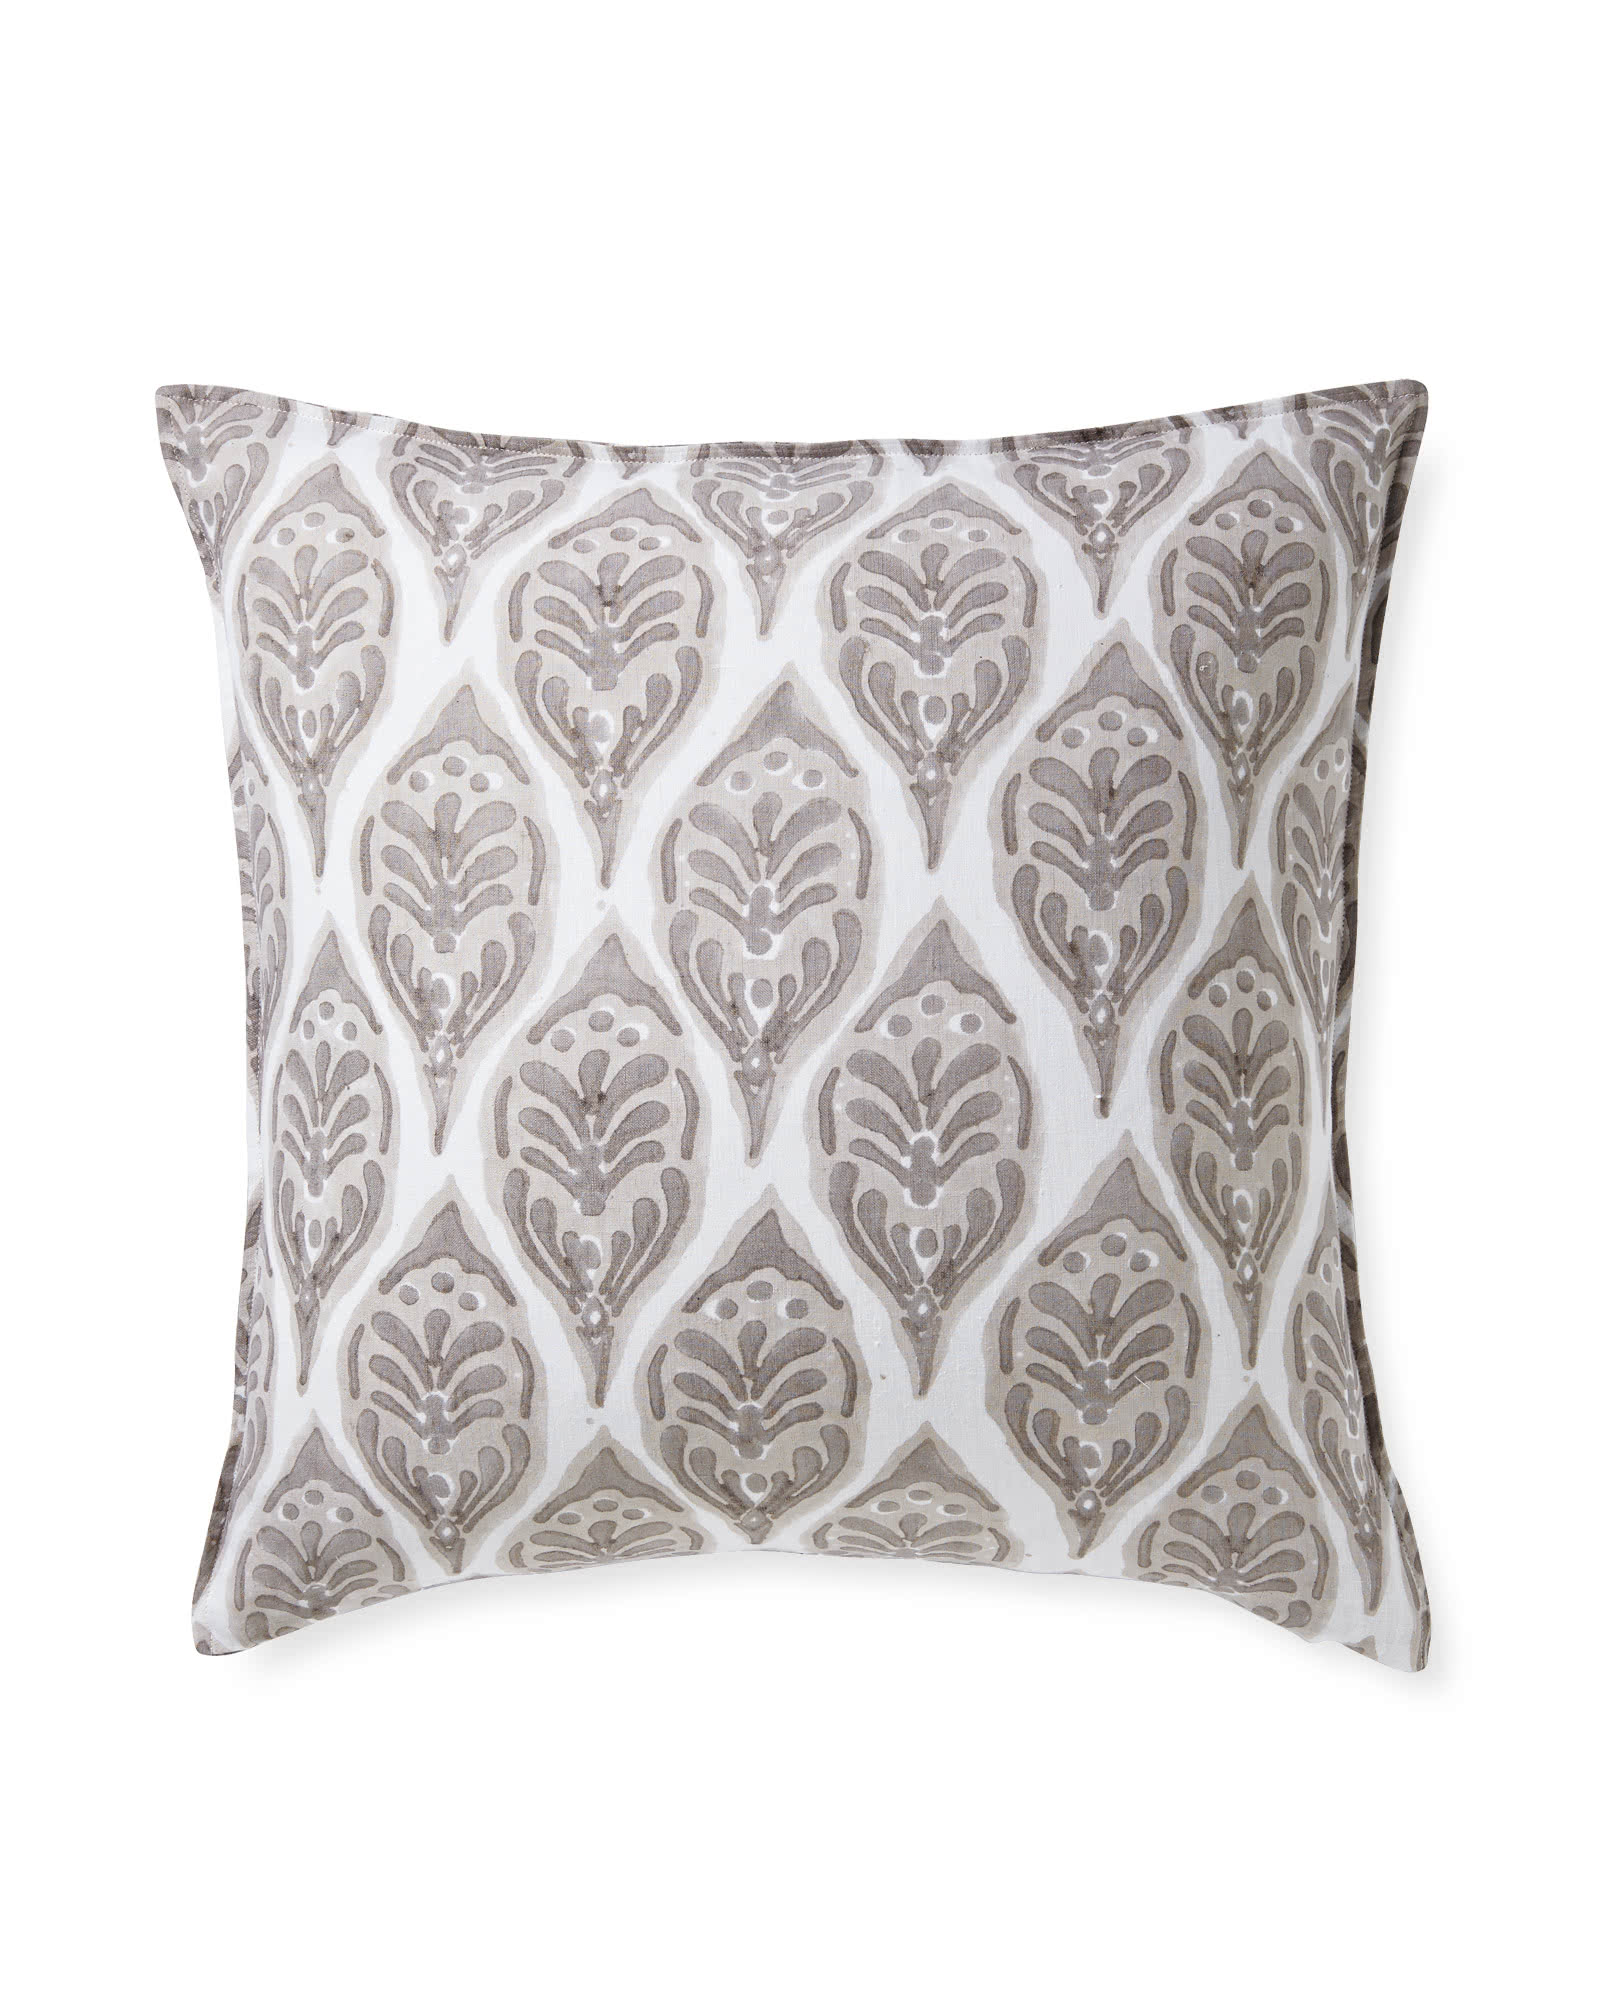 Magnolia Pillow Cover, Bark